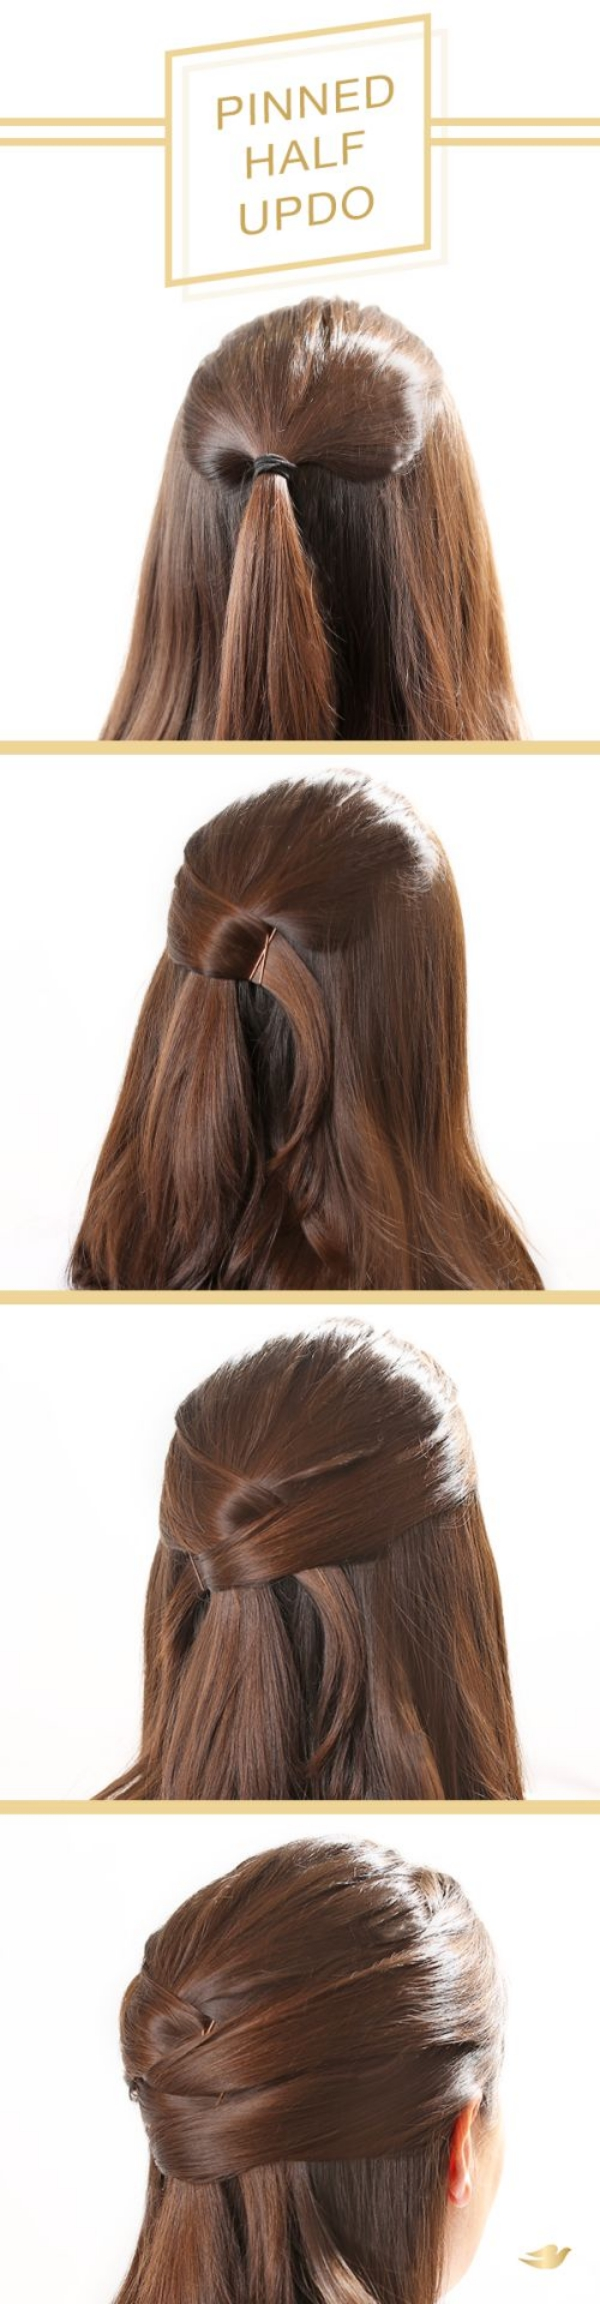 simple minute hairstyles five office tutorials complete